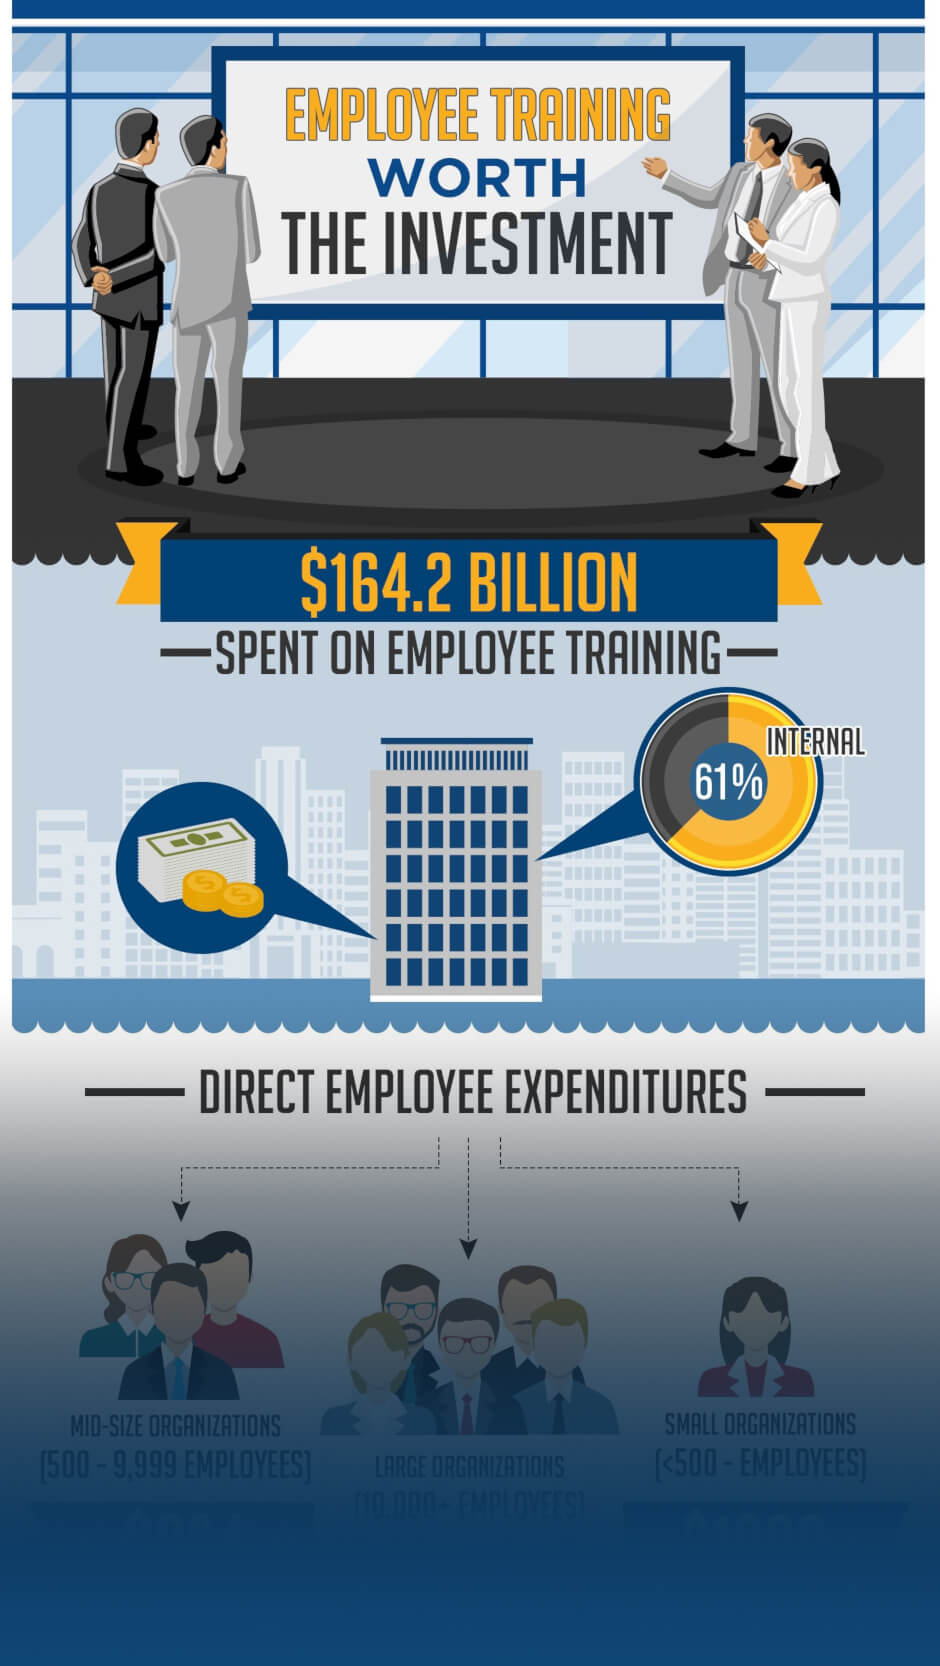 Employee training worth the investment infographic